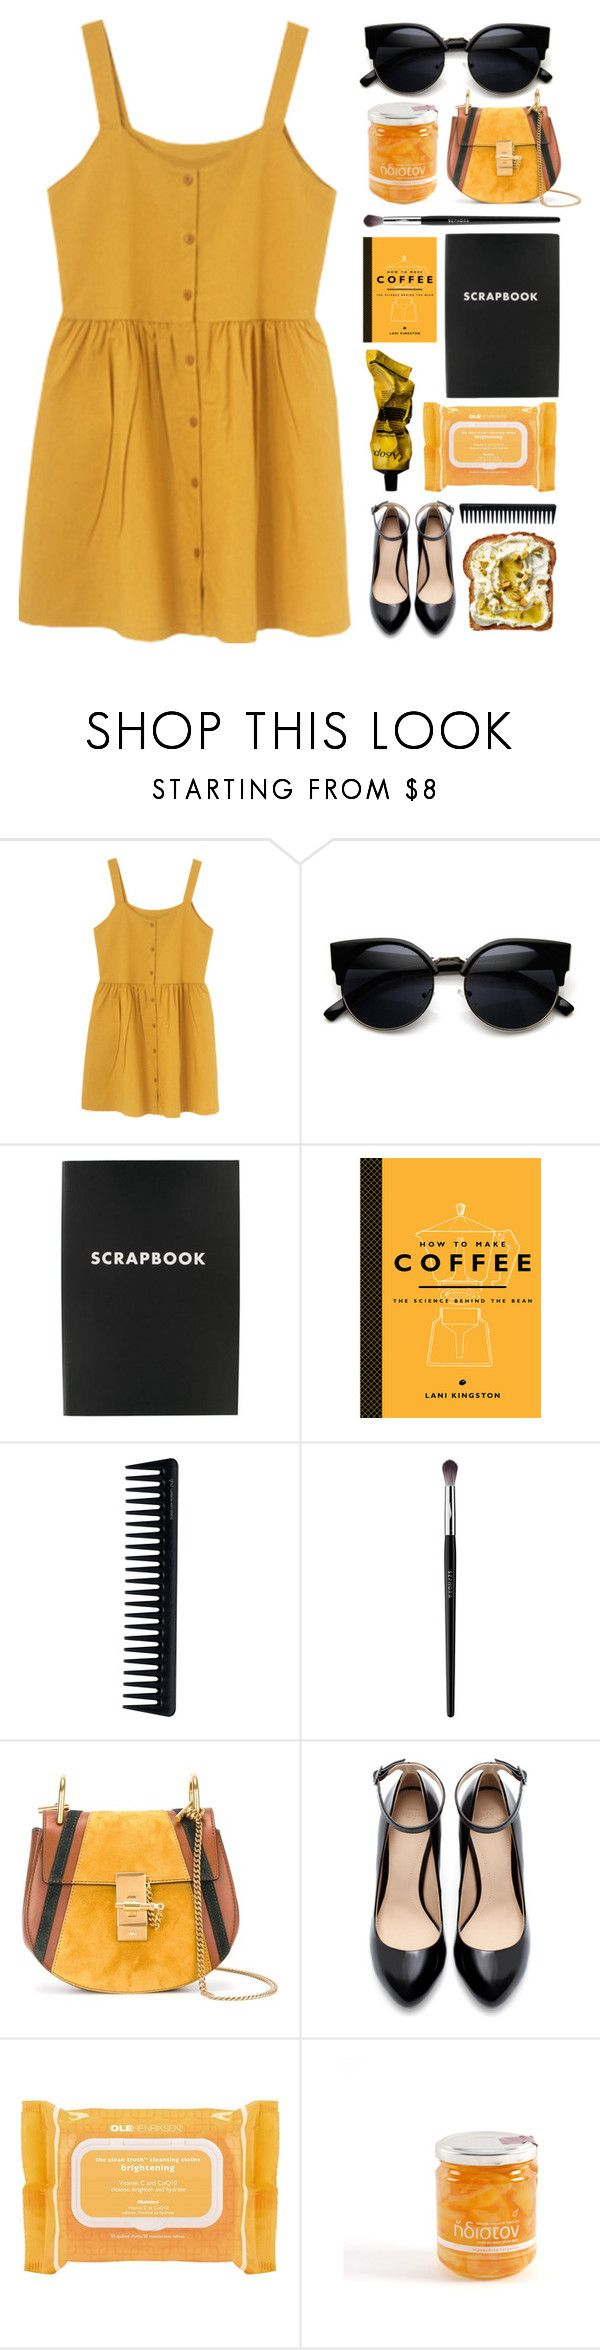 """""""Honey"""" by seriouskatya ❤ liked on Polyvore featuring ZeroUV, Dot & Bo, GHD, Sephora Collection, Chloé, Zara, Ole Henriksen and Aesop"""